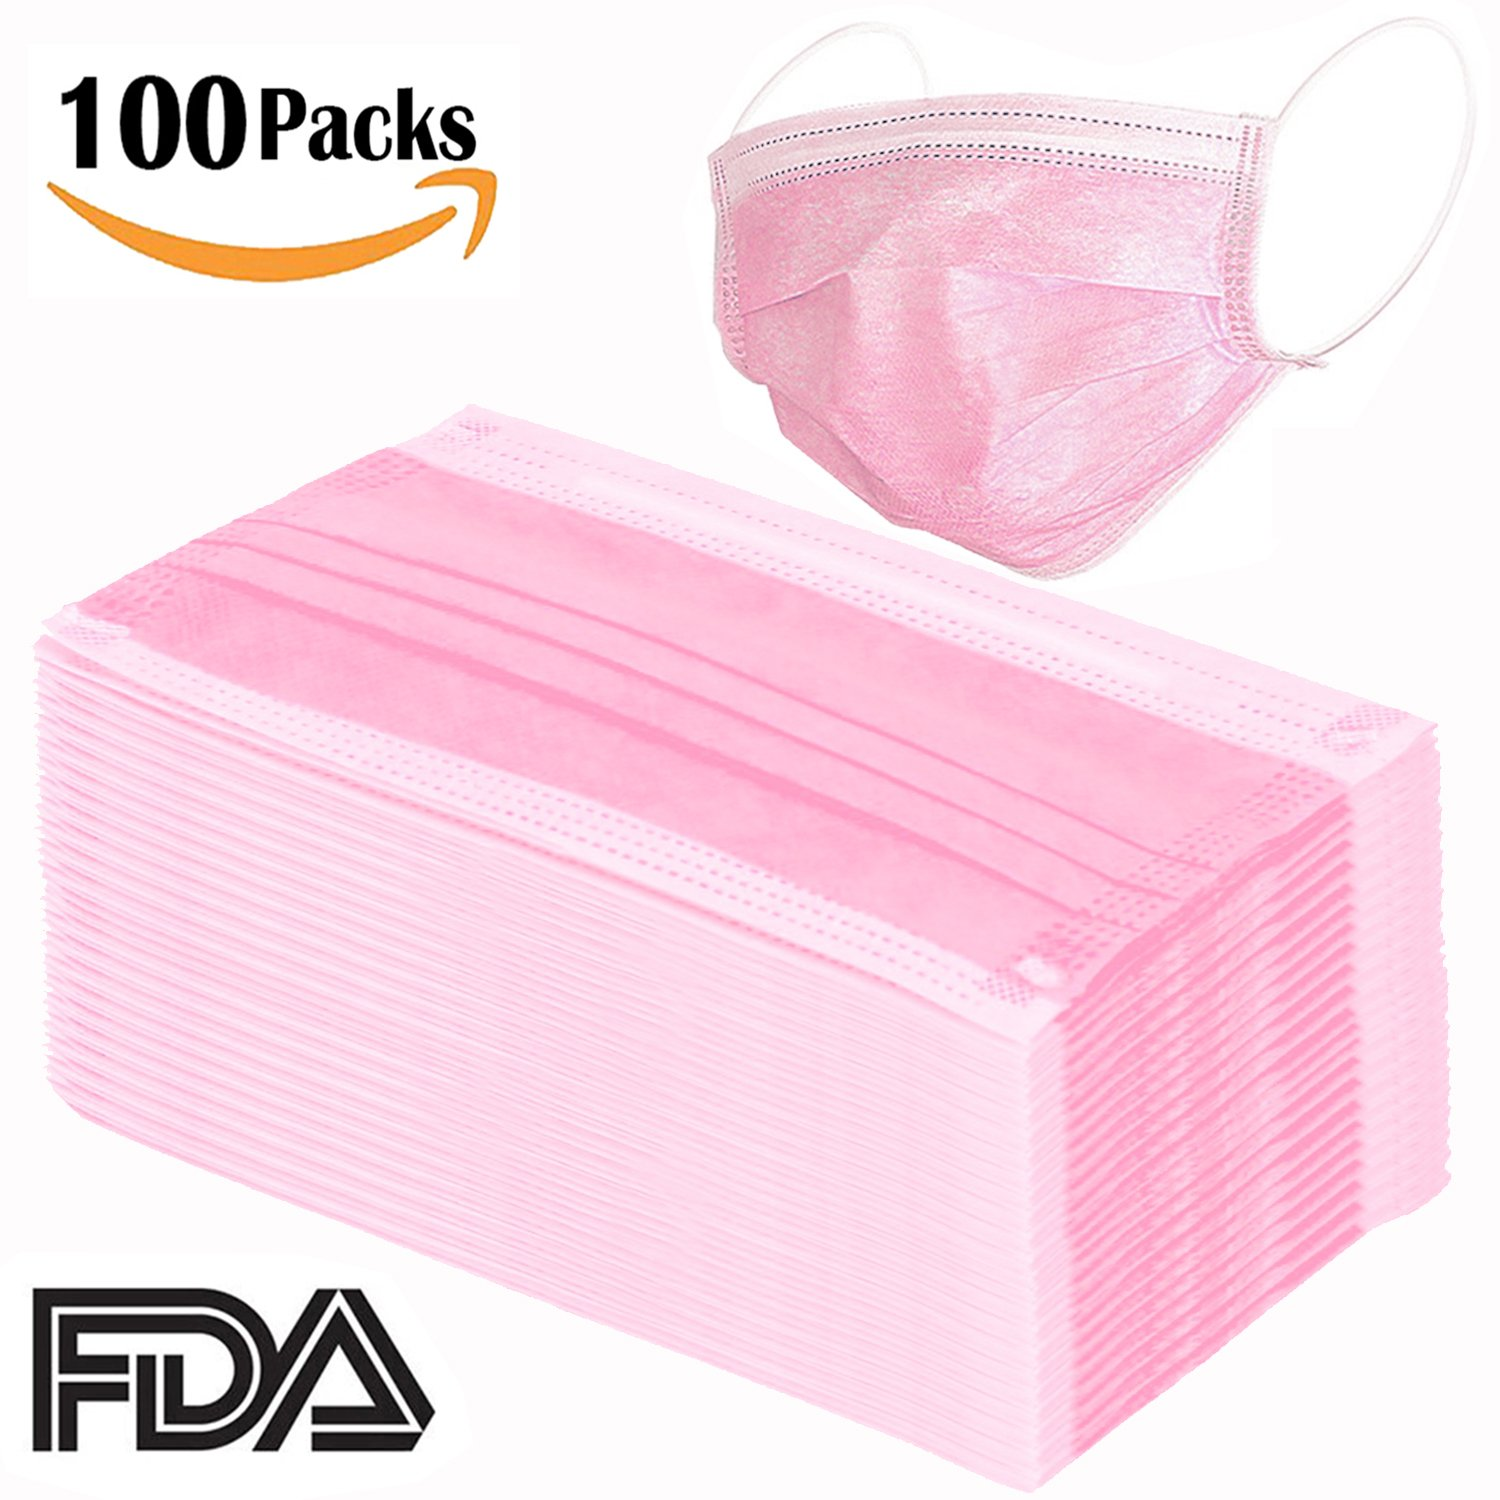 100 Pcs Disposable Earloop Face Masks Dental Surgical Hypoallergenic Breathability Comfort-Great for People with Allergies and The Flu(Pink) by Pruk